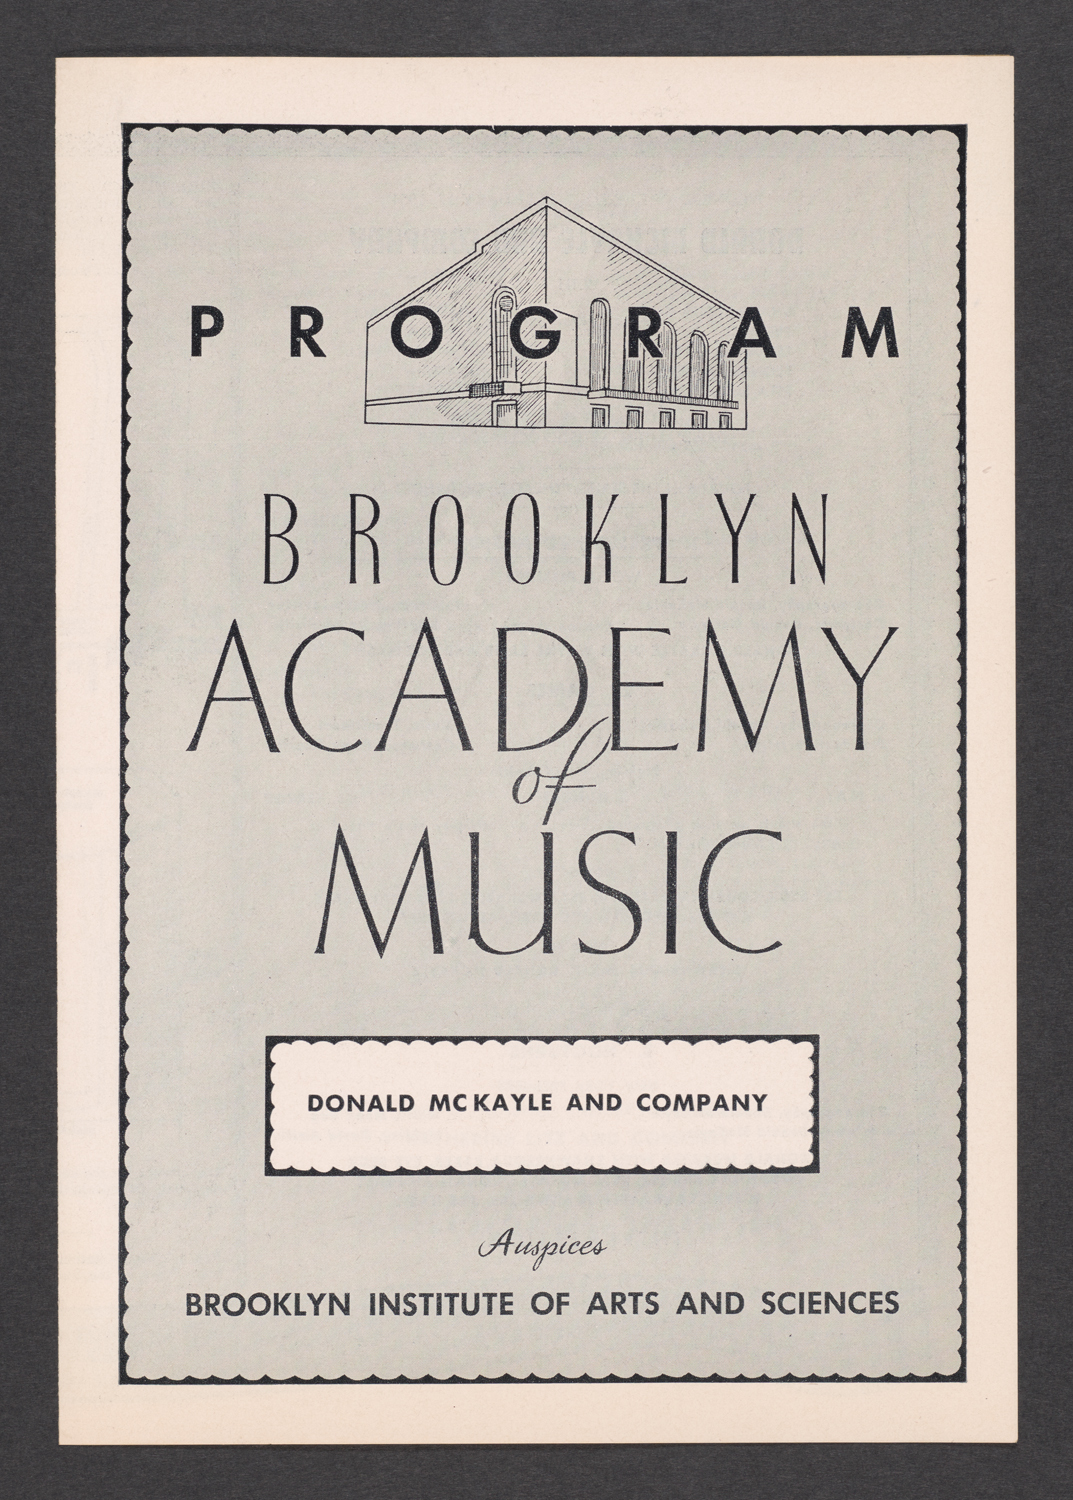 Donald McKayle and Company at Brooklyn Academy of Music : Cover